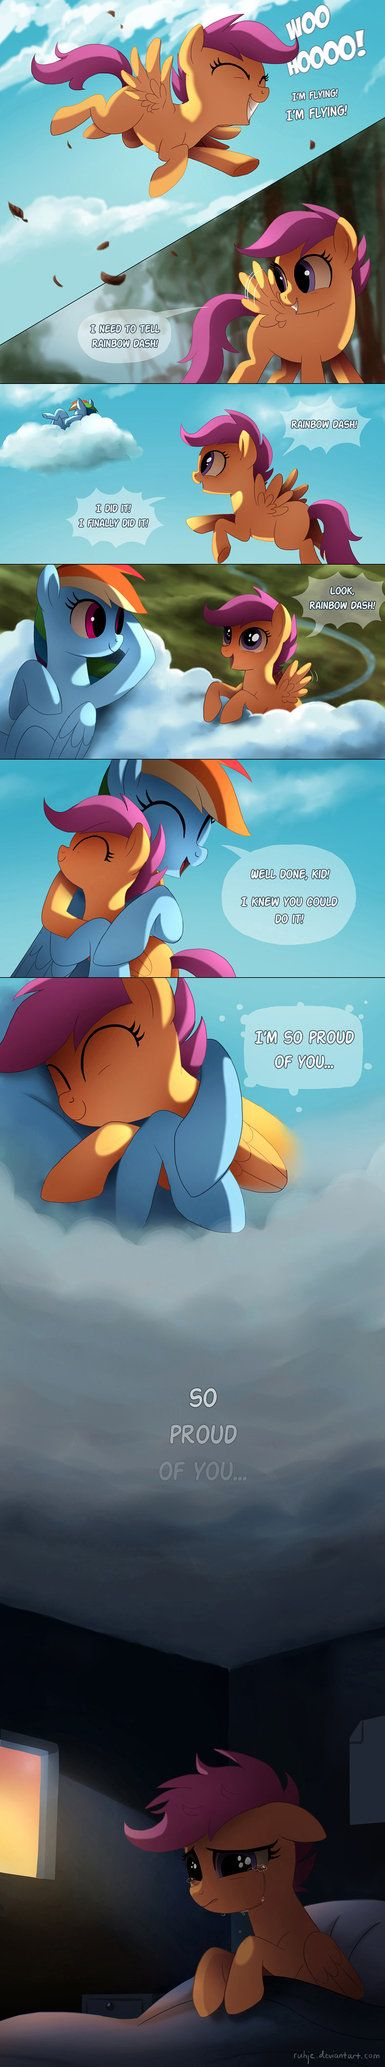 500 Scootaloo She My Favorite Pony I Love Scootaloo To Me Ideas Pony My Little Pony My Little Pony Friendship Scootaloo can't fly (flight to the finish) | mlp: 500 scootaloo she my favorite pony i